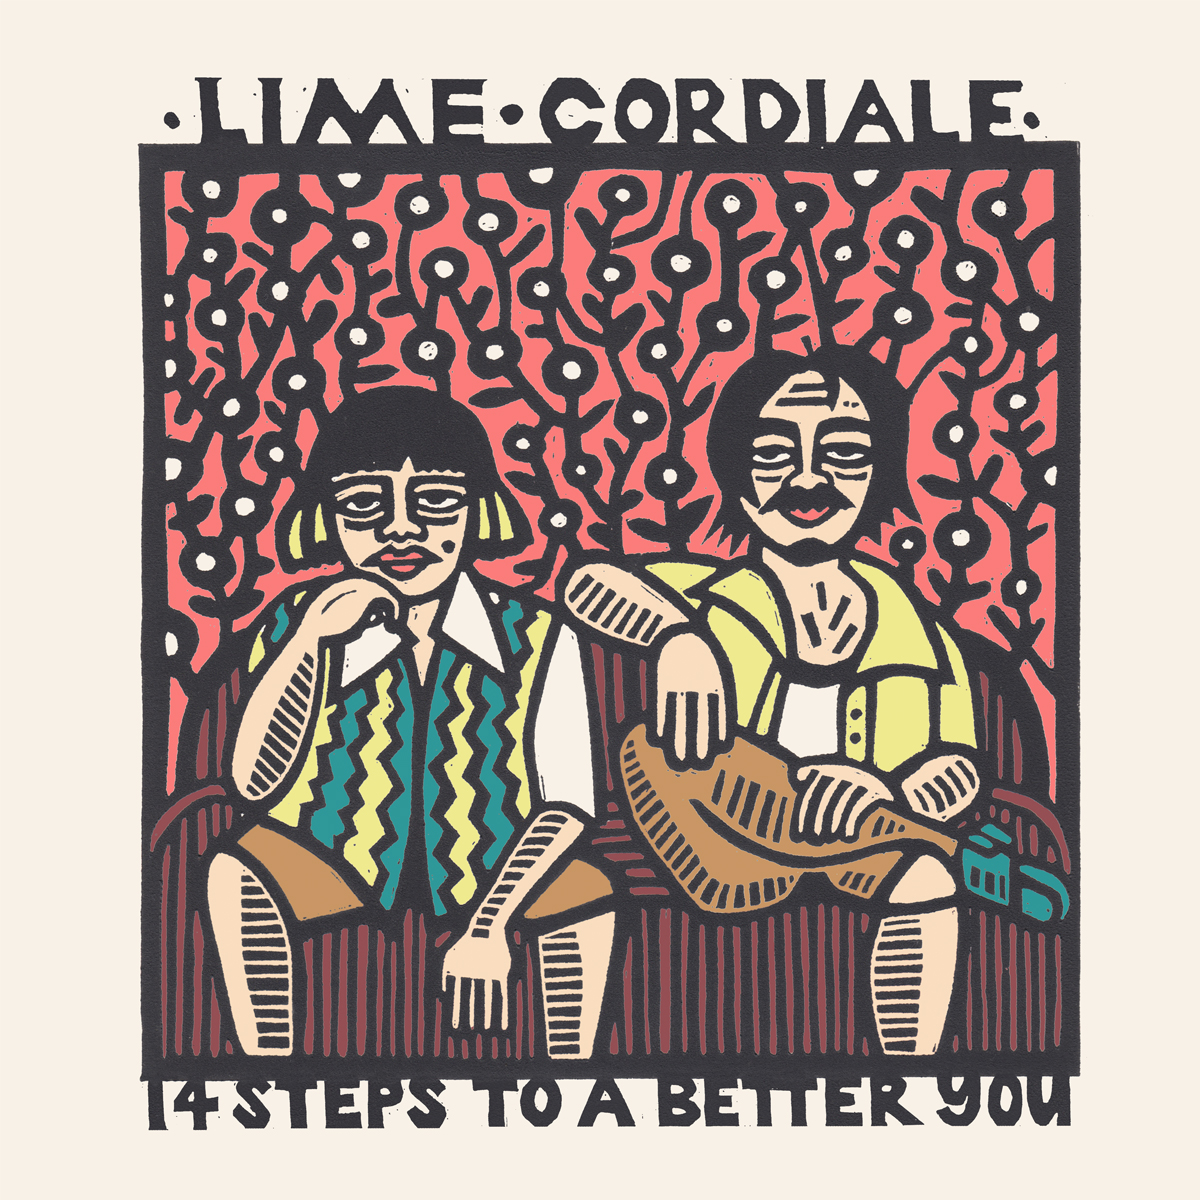 Lime Cordiale new album 14 Steps to a Better You